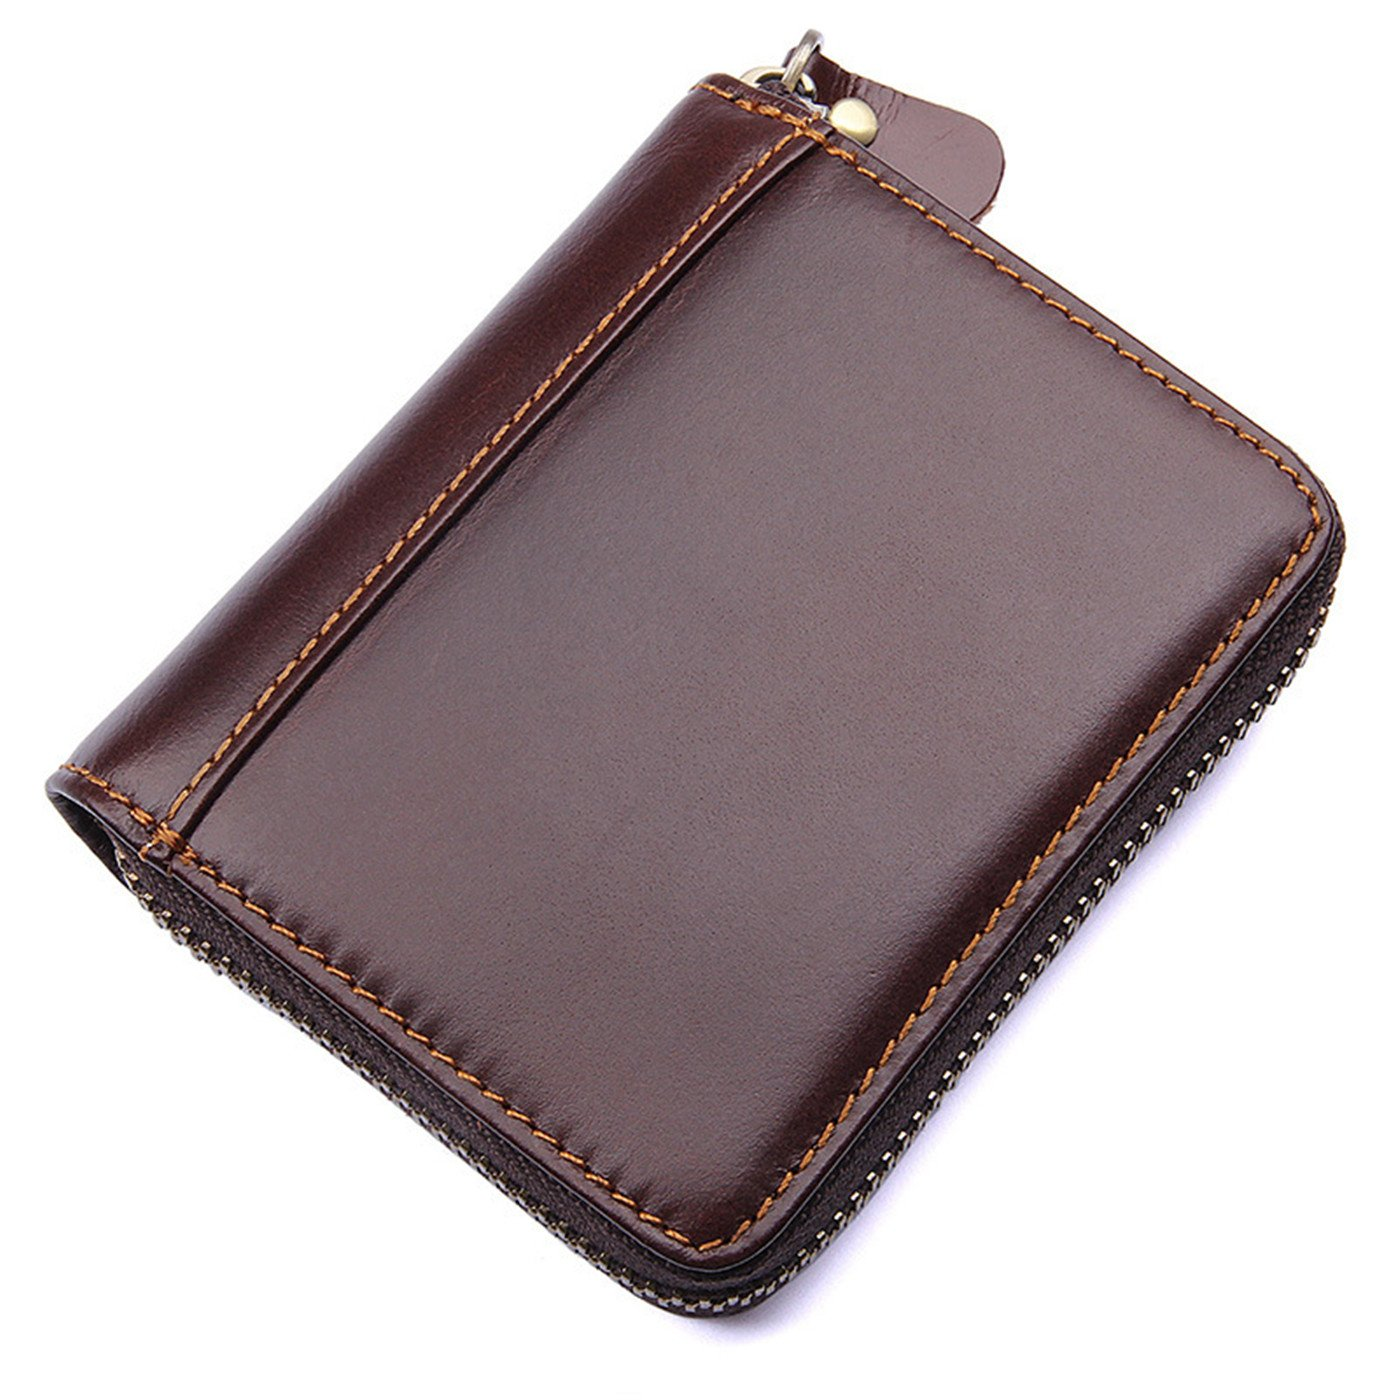 ULUIKY Occident Style Men and Women's Genuine Leather RFID Secure Spacious Cute Zipper Card Wallet Small Purse Leather Credit Card Security Travel Wallet (1-0)